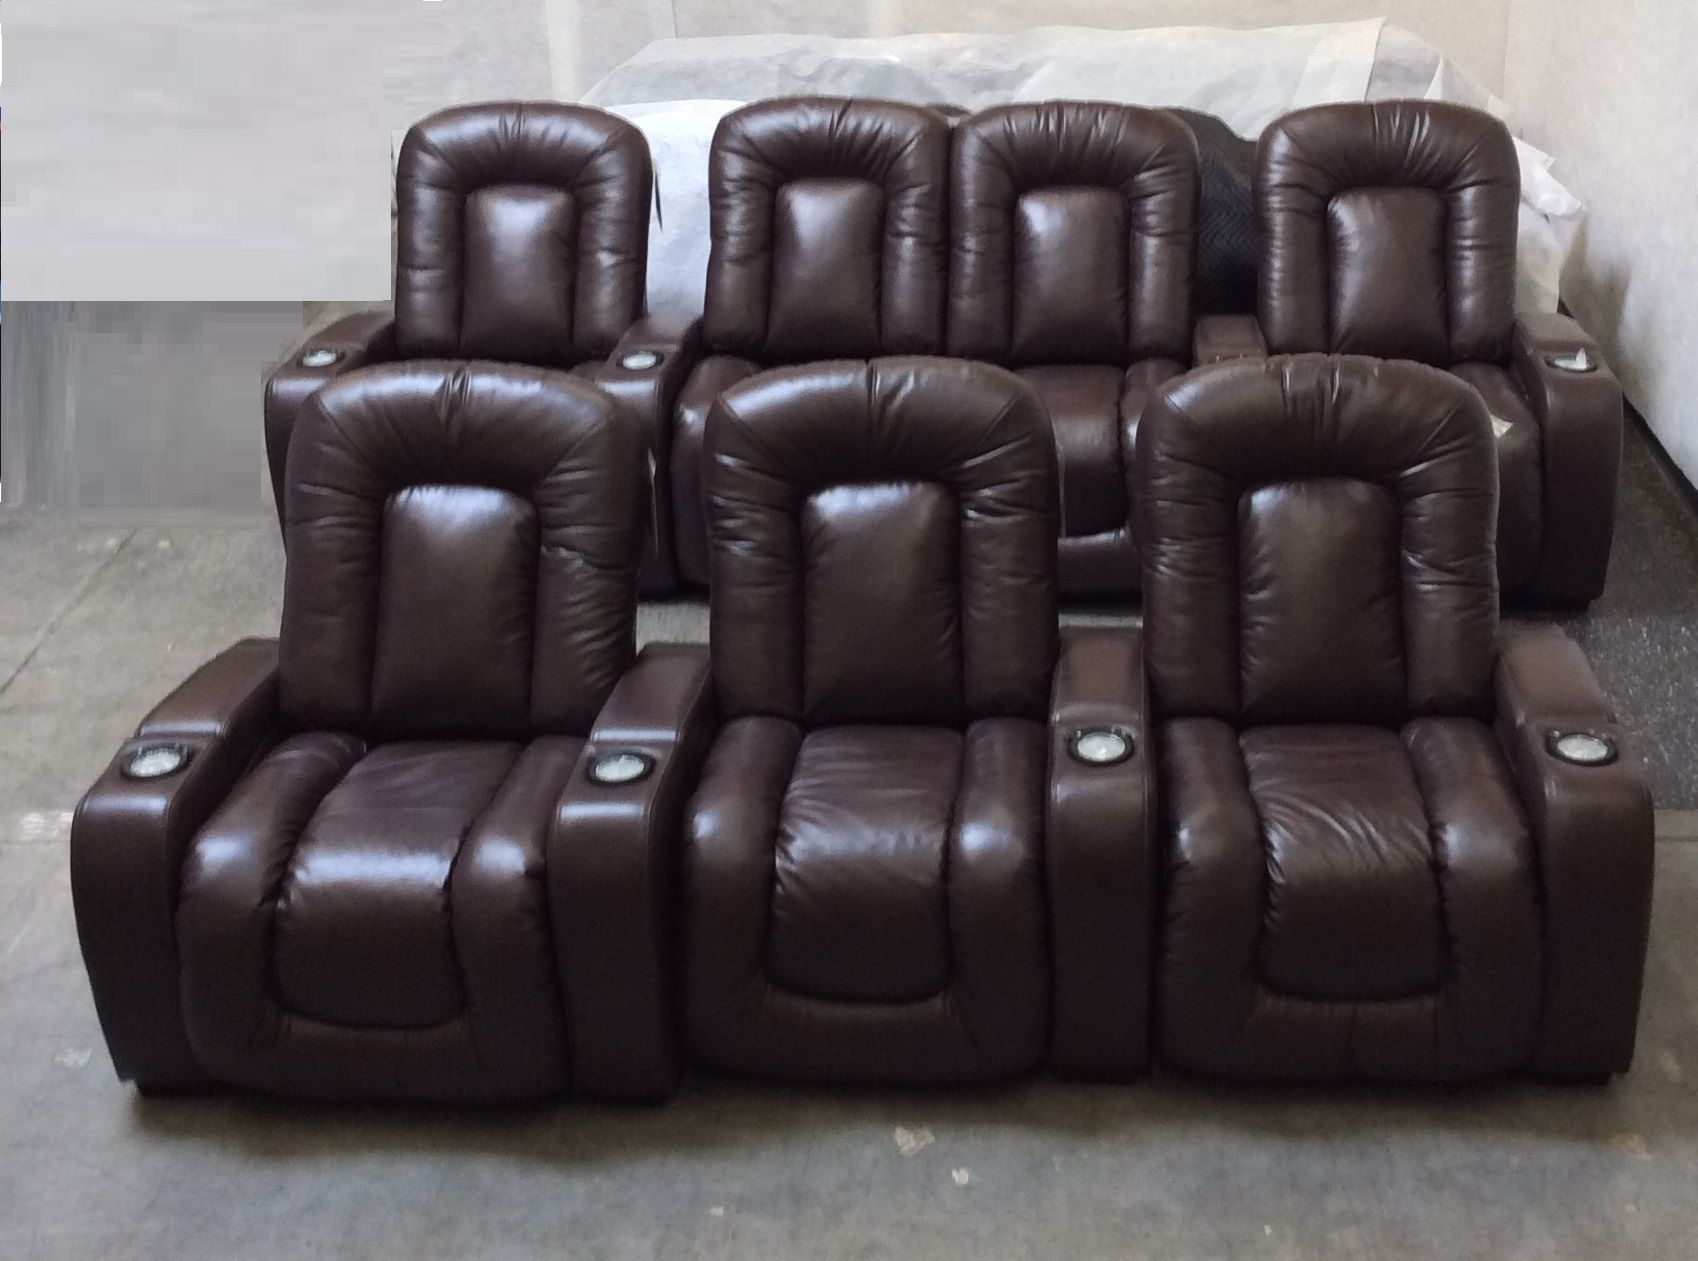 Mendoza Theater seating upholstered in Bronco Steer leather from